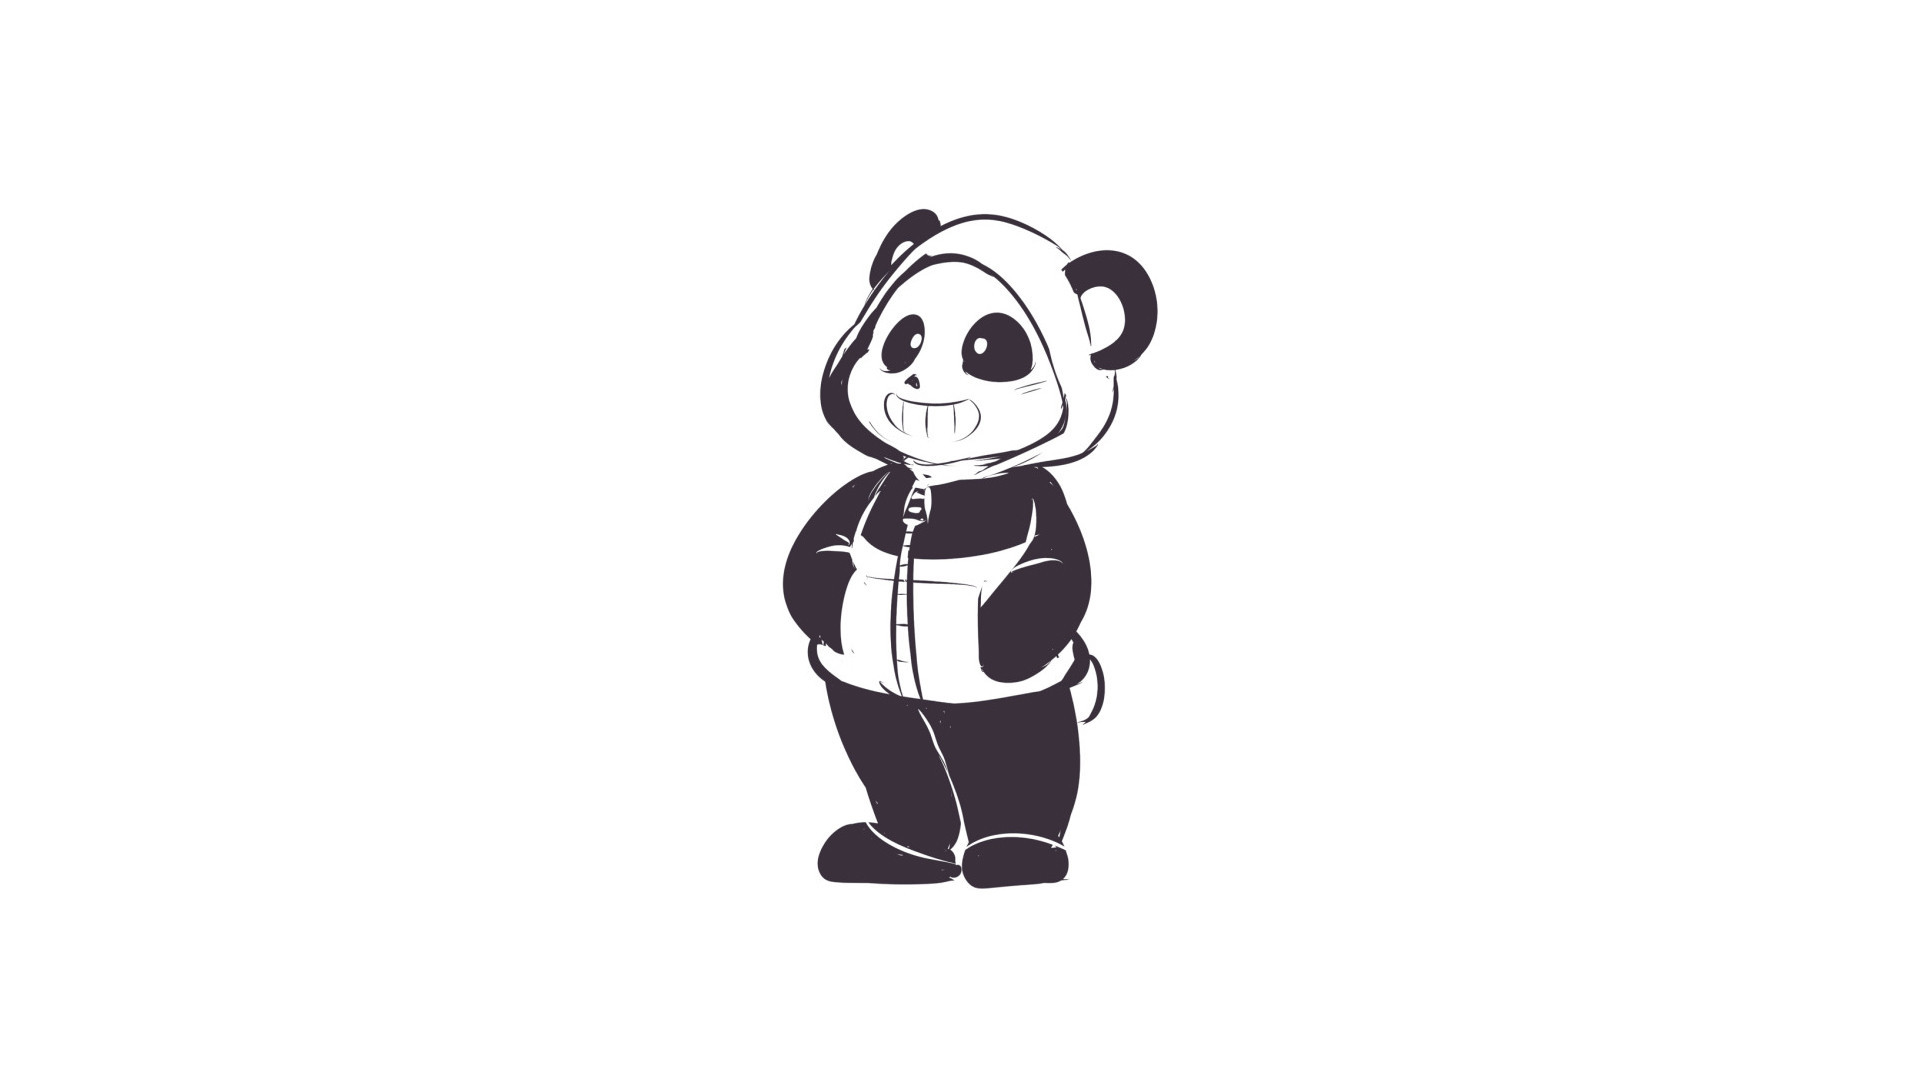 Panda Cartoon Wallpapers 76 Background Pictures